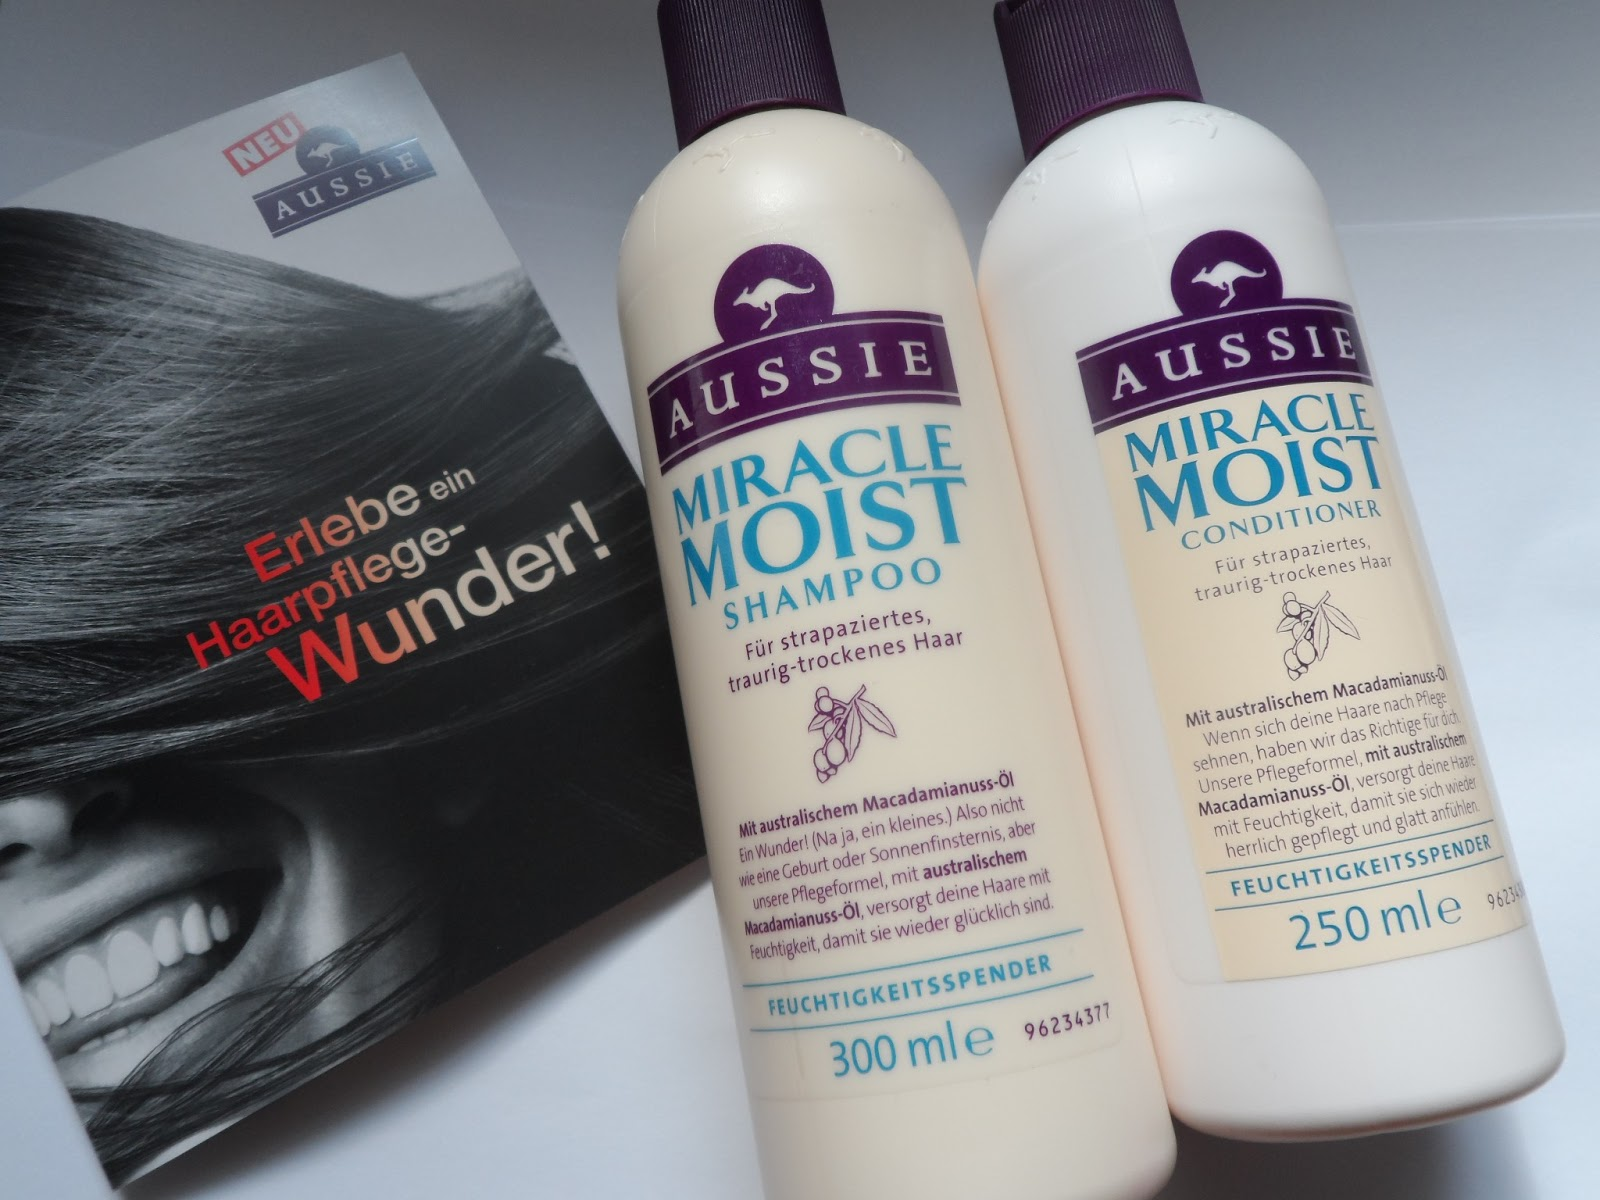 aussie miracle moist shampoo sp lung f r traurig. Black Bedroom Furniture Sets. Home Design Ideas